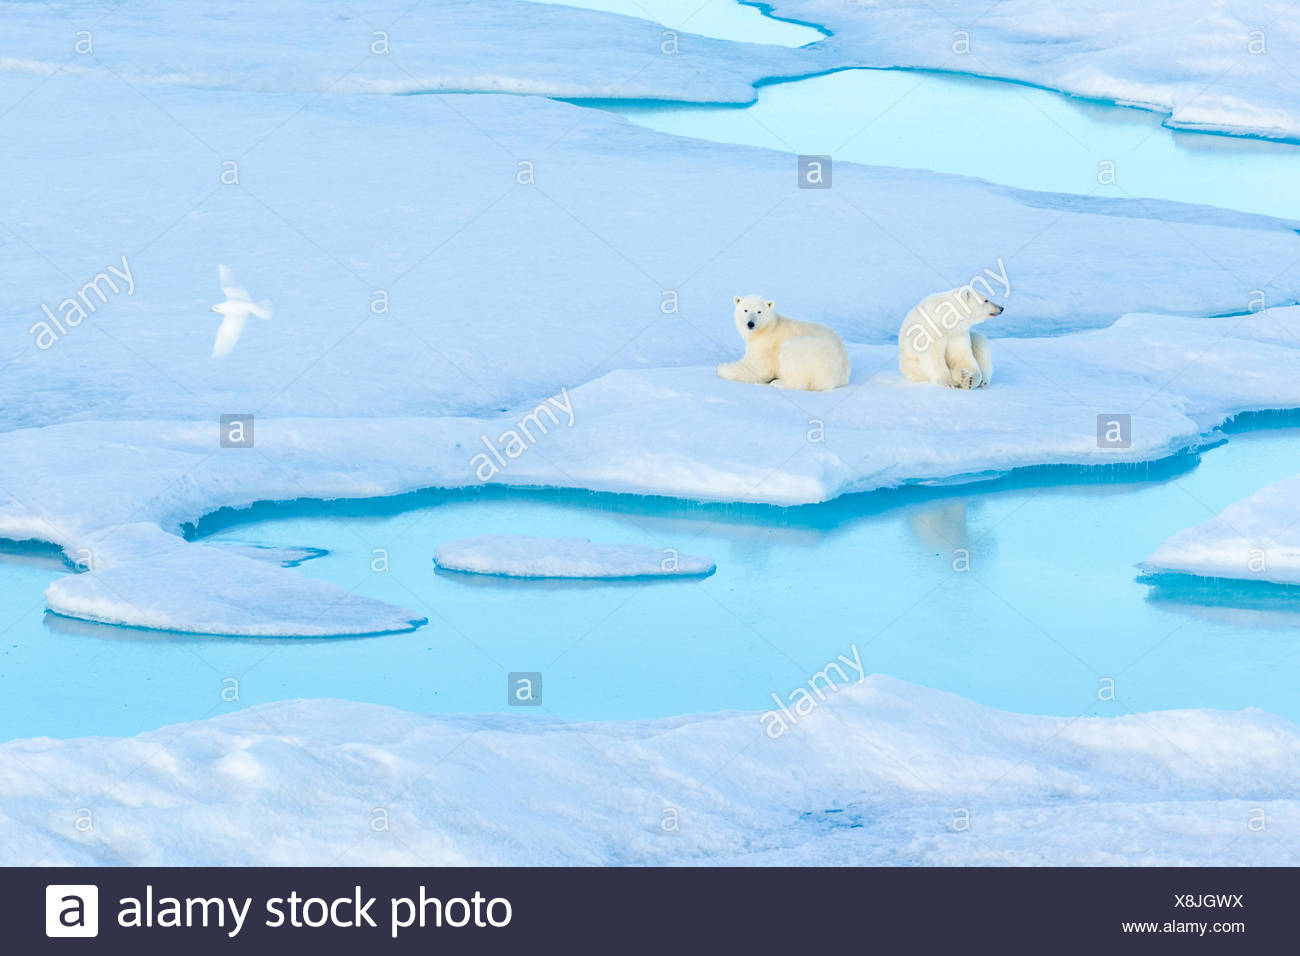 Resting polar bear cubs (Ursus maritimus) on an ice floe while an Ivory Gull flies by, Polar Bear Pass in Lancaster Sound. - Stock Image